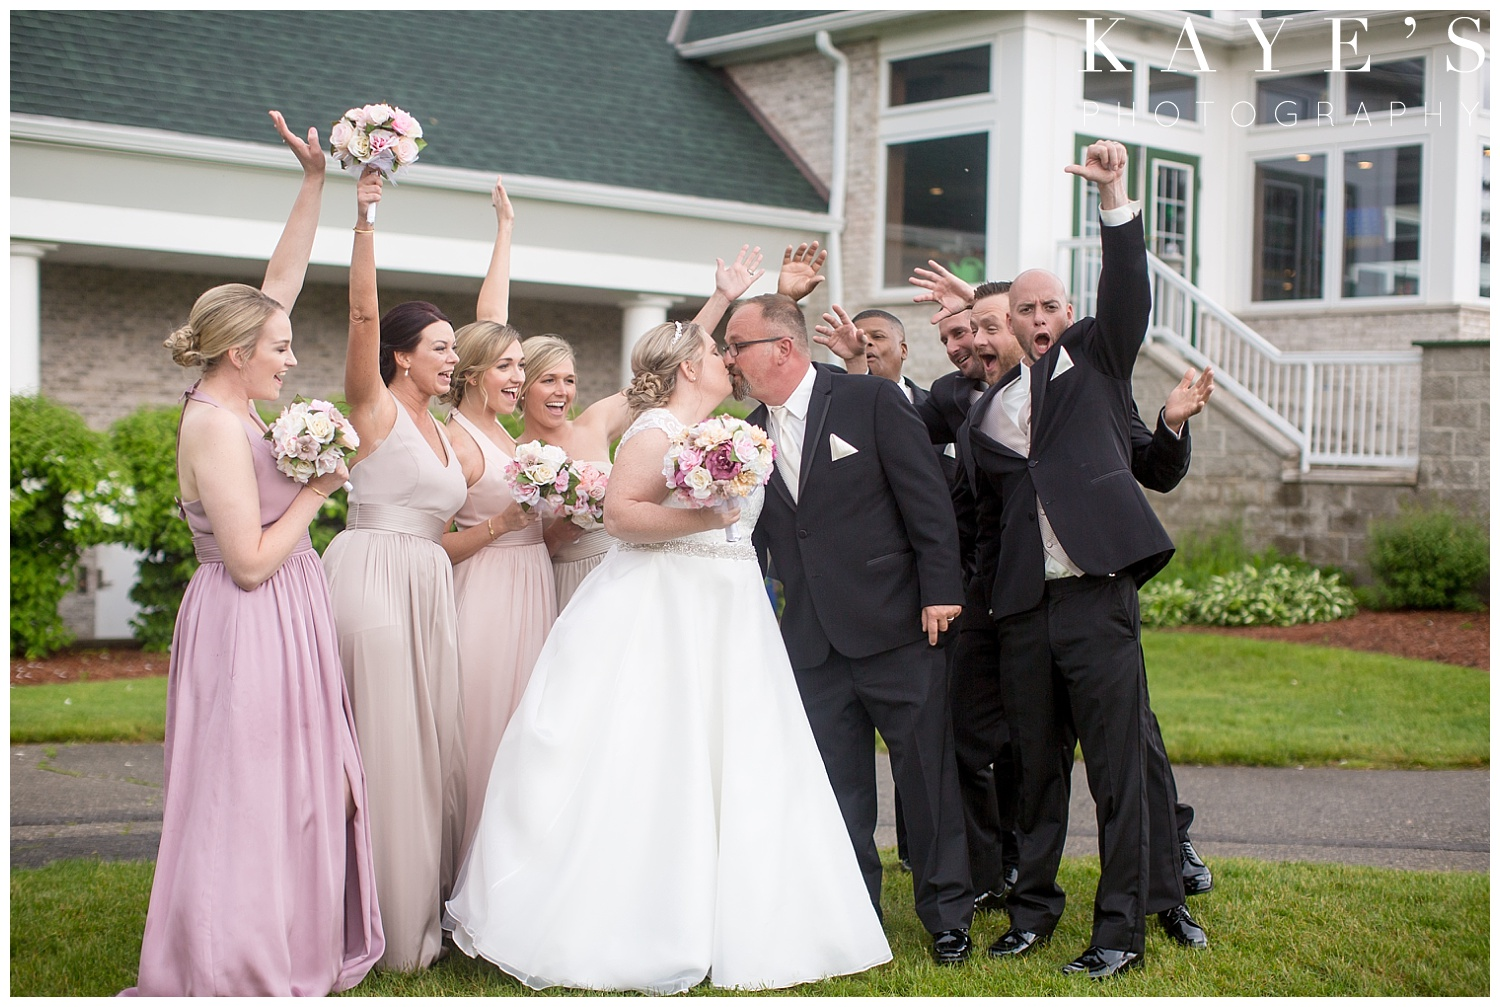 bridal party photos with bride and groom kissing